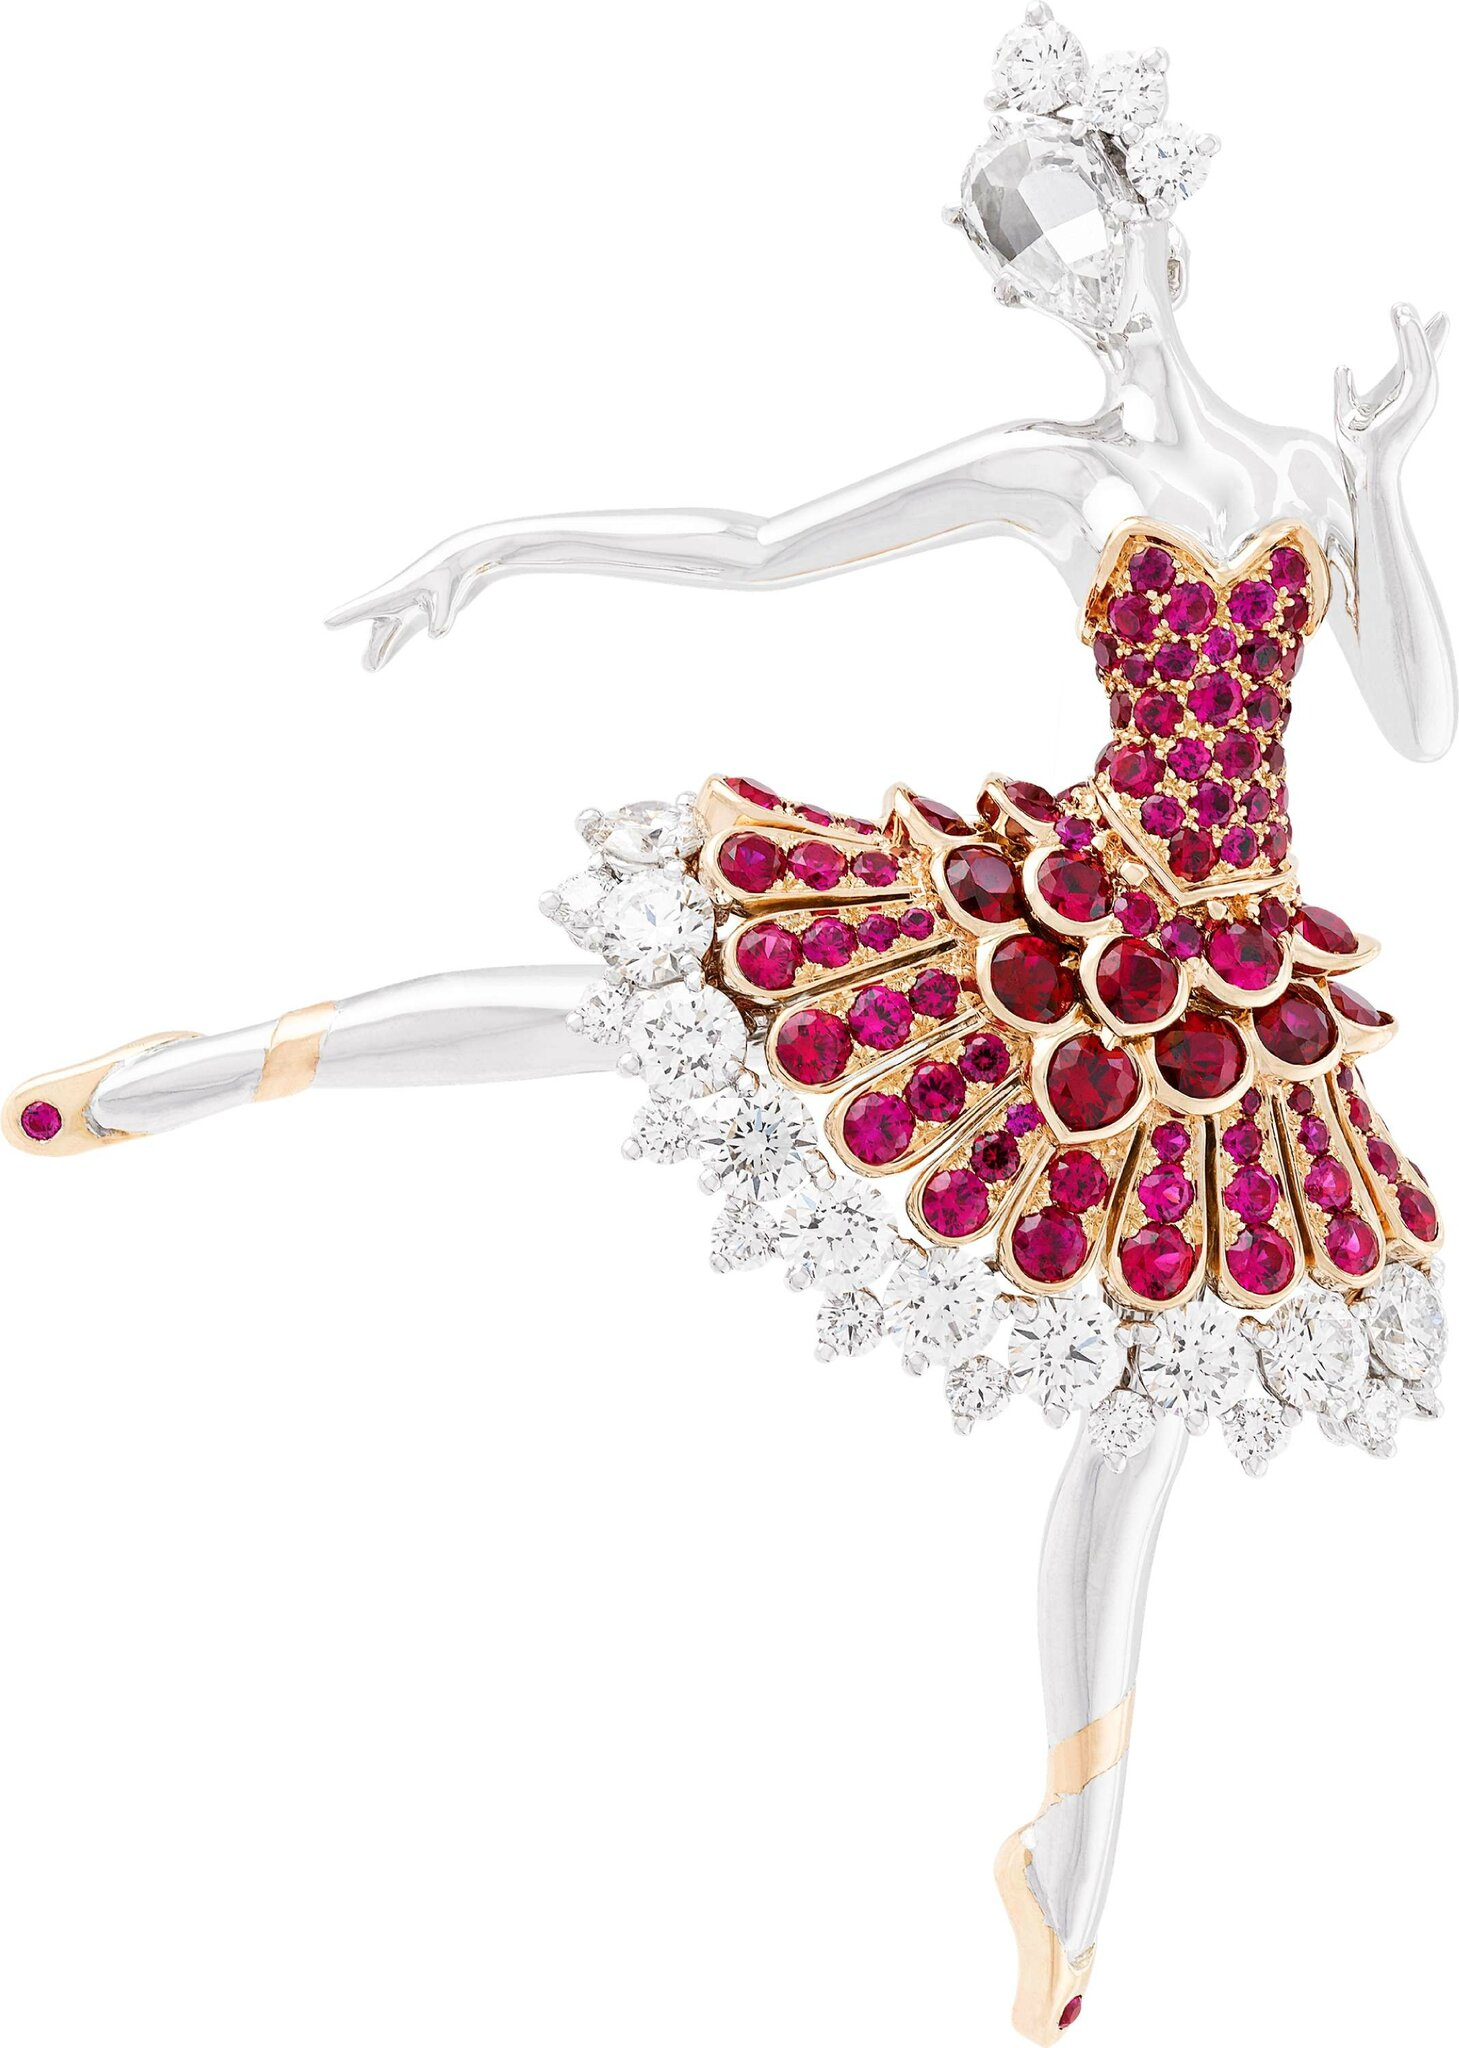 Van Cleef & Arpels at Masterpiece London 2015